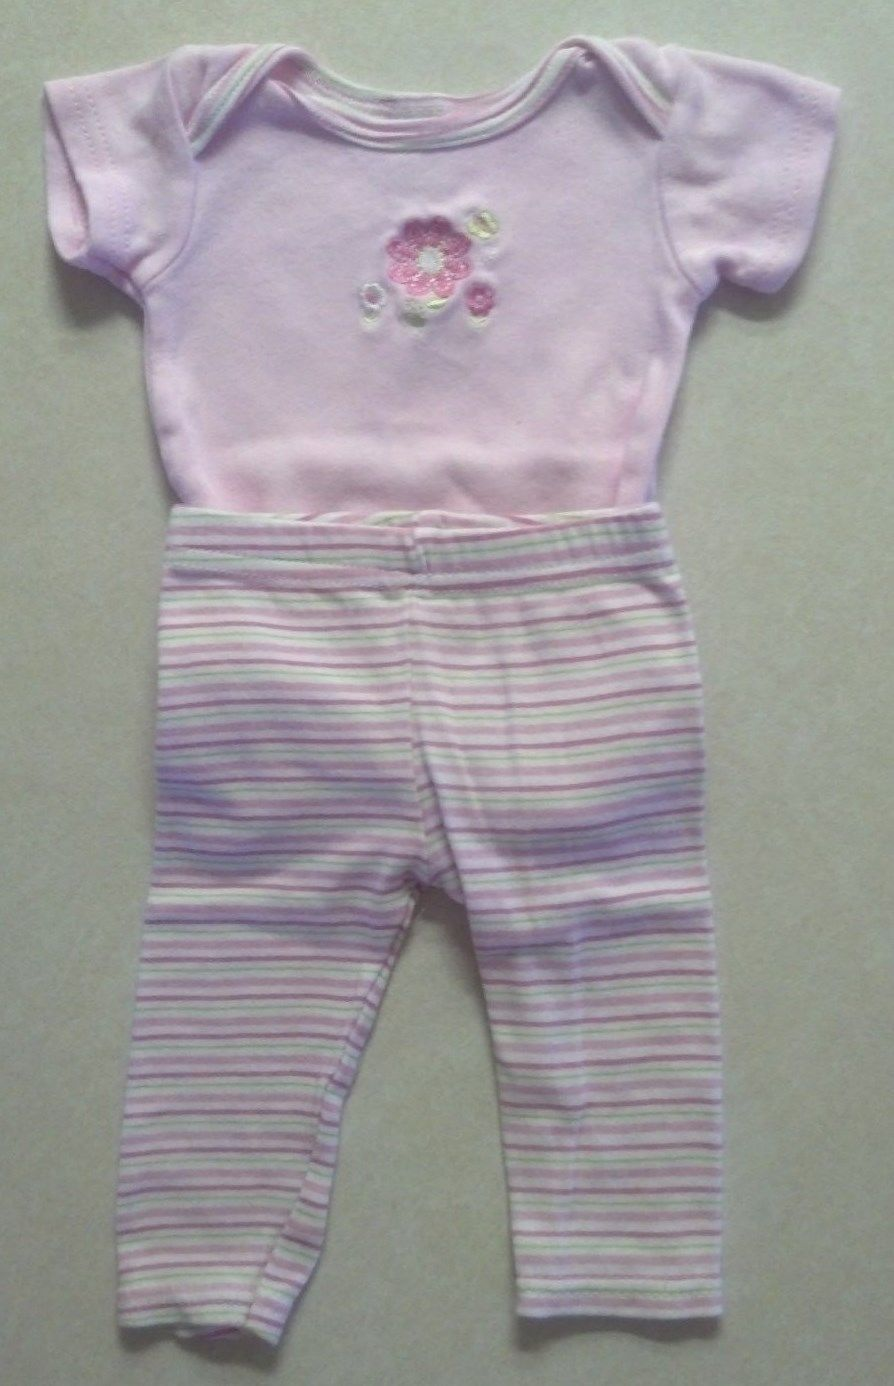 Girl's Size 0-3 M Months Two Piece Cutie Pie Outfit Floral Embroid. Top & Pants